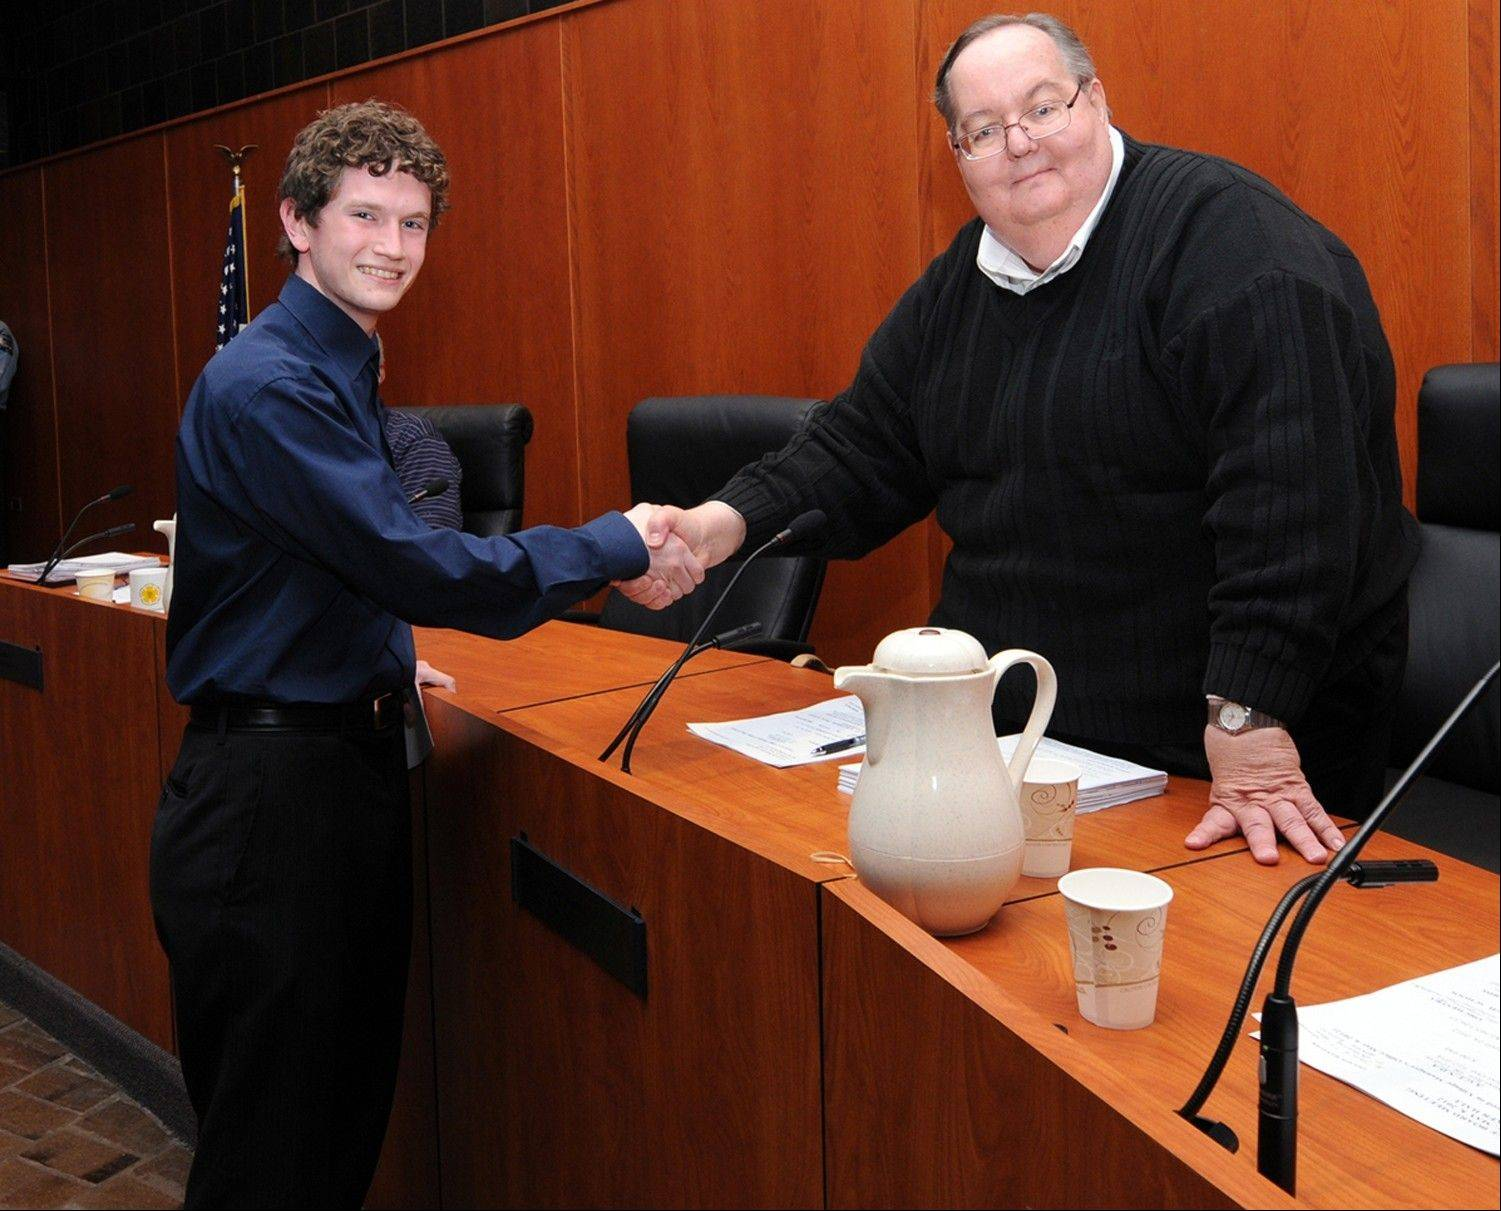 Schaumburg Trustee George Dunham presents the Kelliher--Lawless Scholarship to outstanding brass player Jacob VanDerBleek, who plays the tuba.